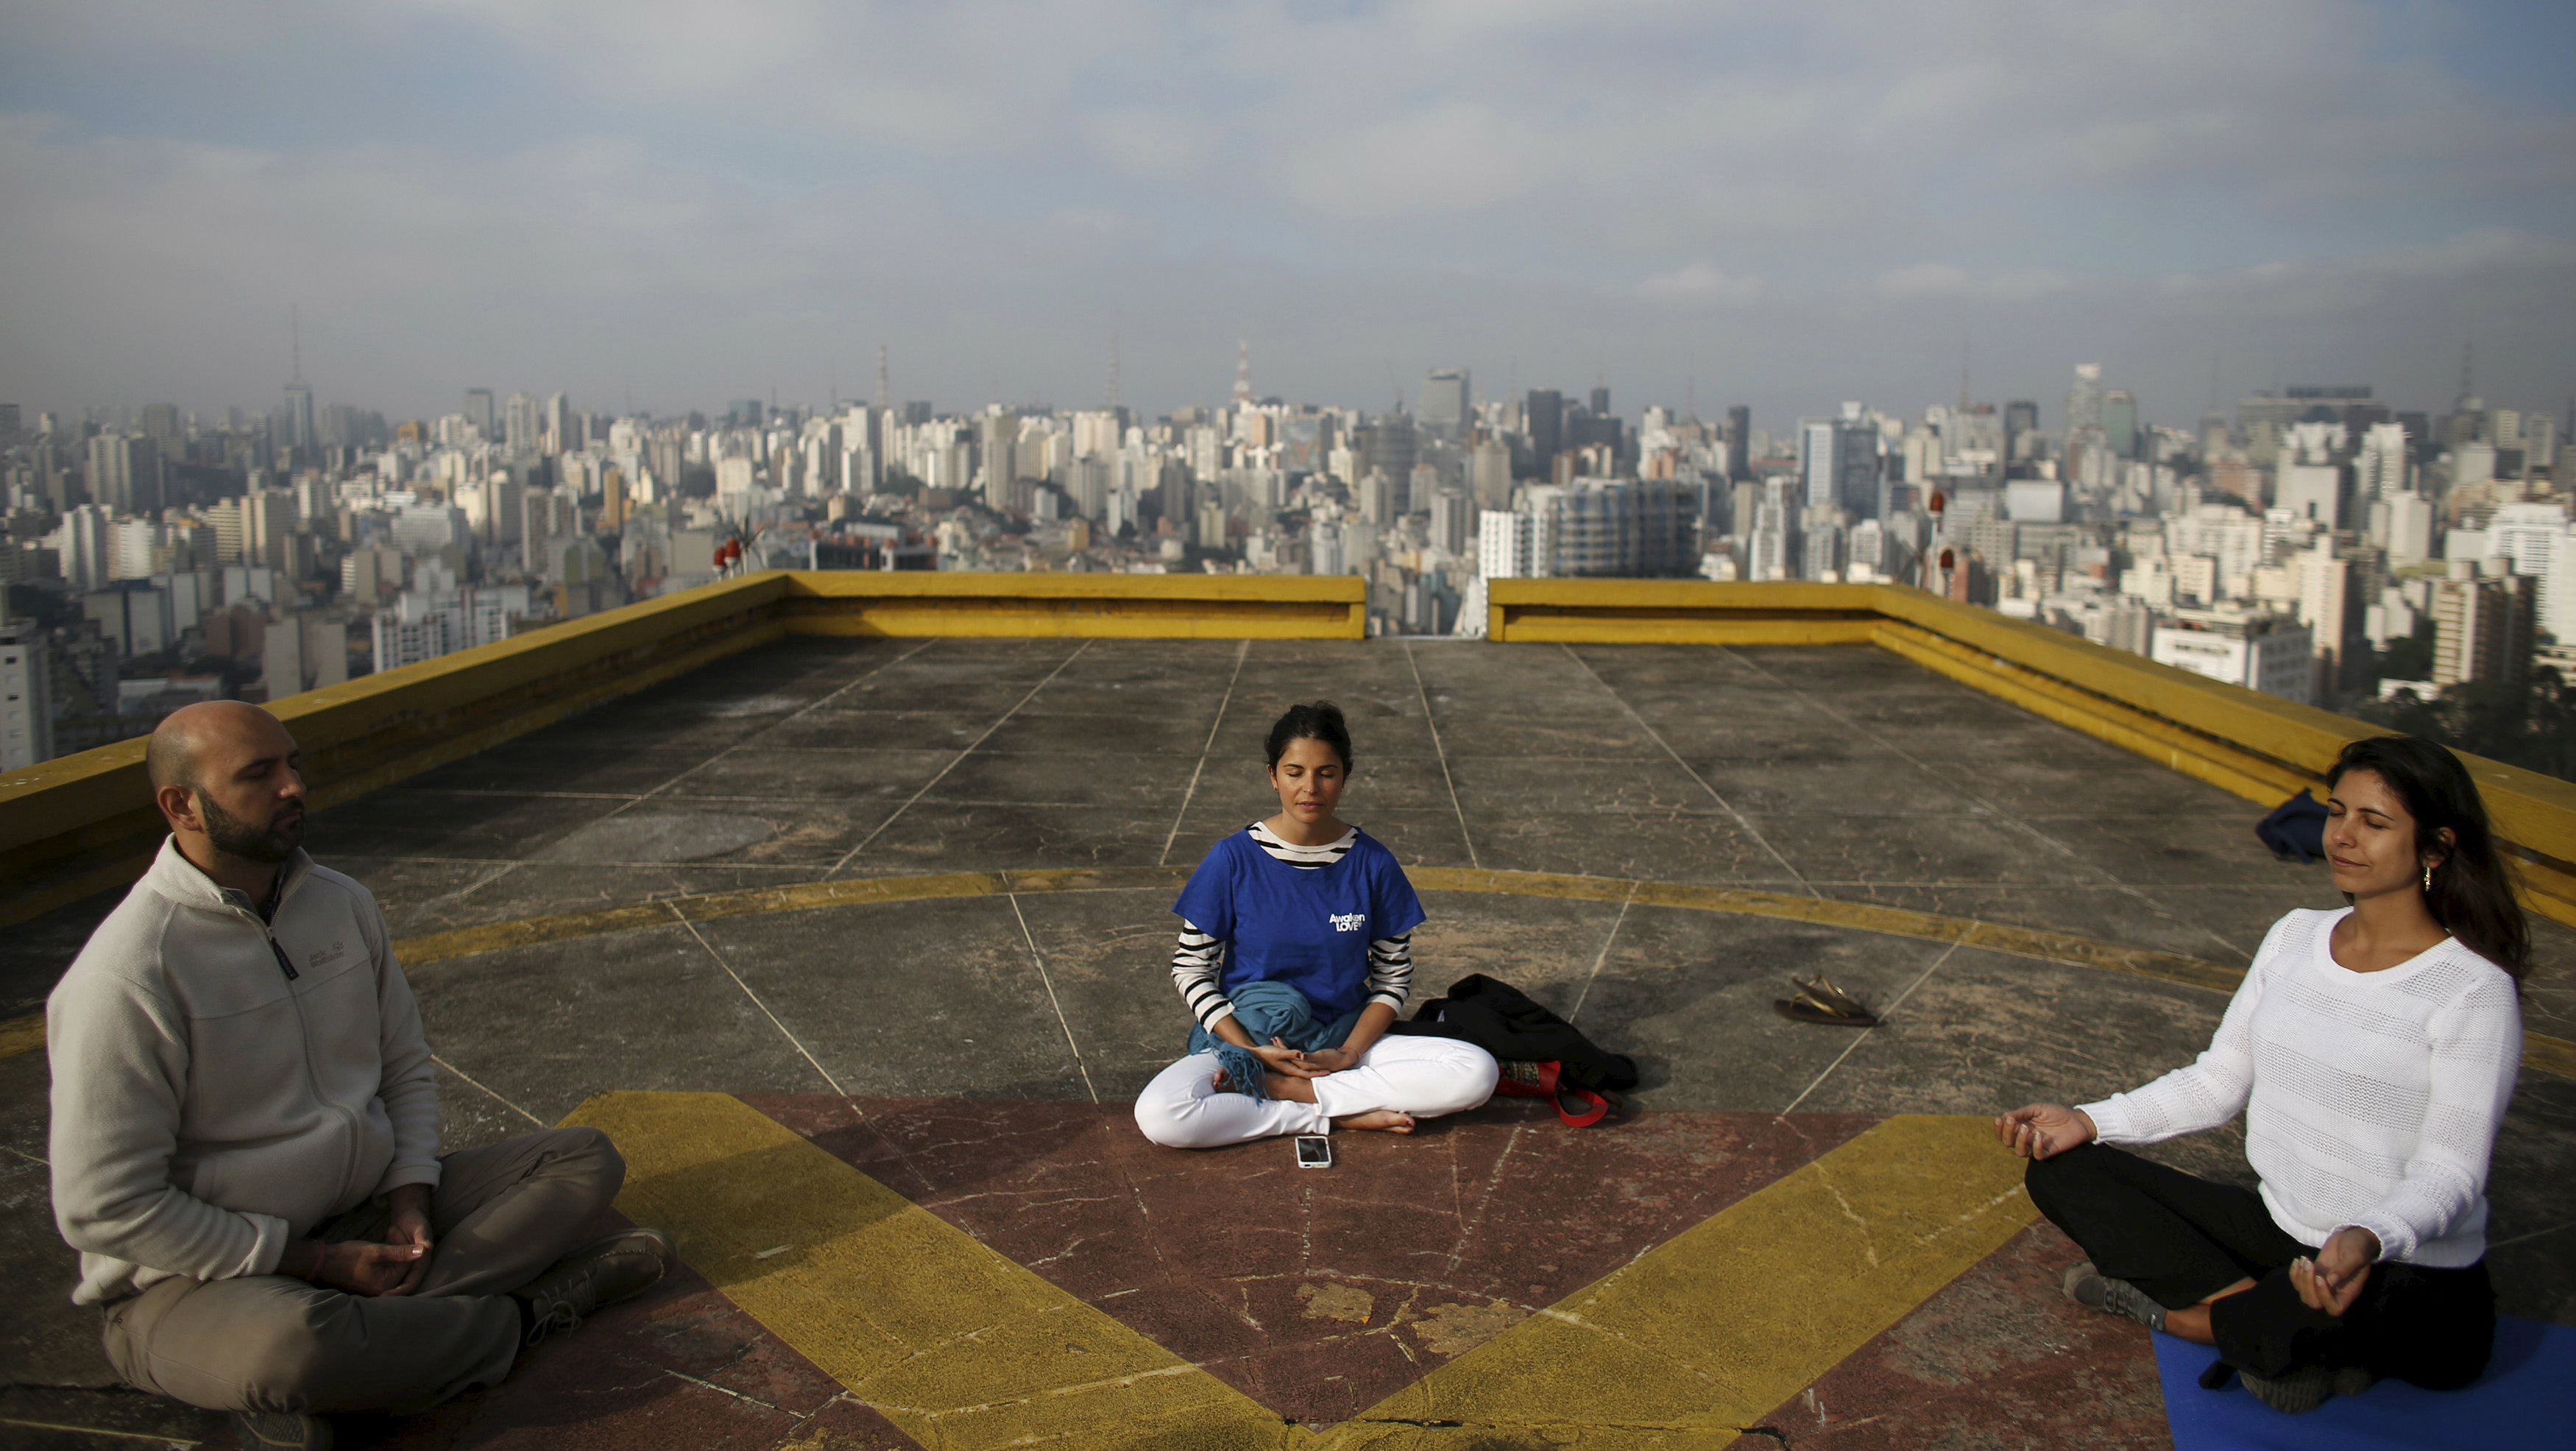 People meditate on the helipad of Copan building to celebrate World Health Day, which was observed on April 7, in downtown Sao Paulo April 9, 2015.